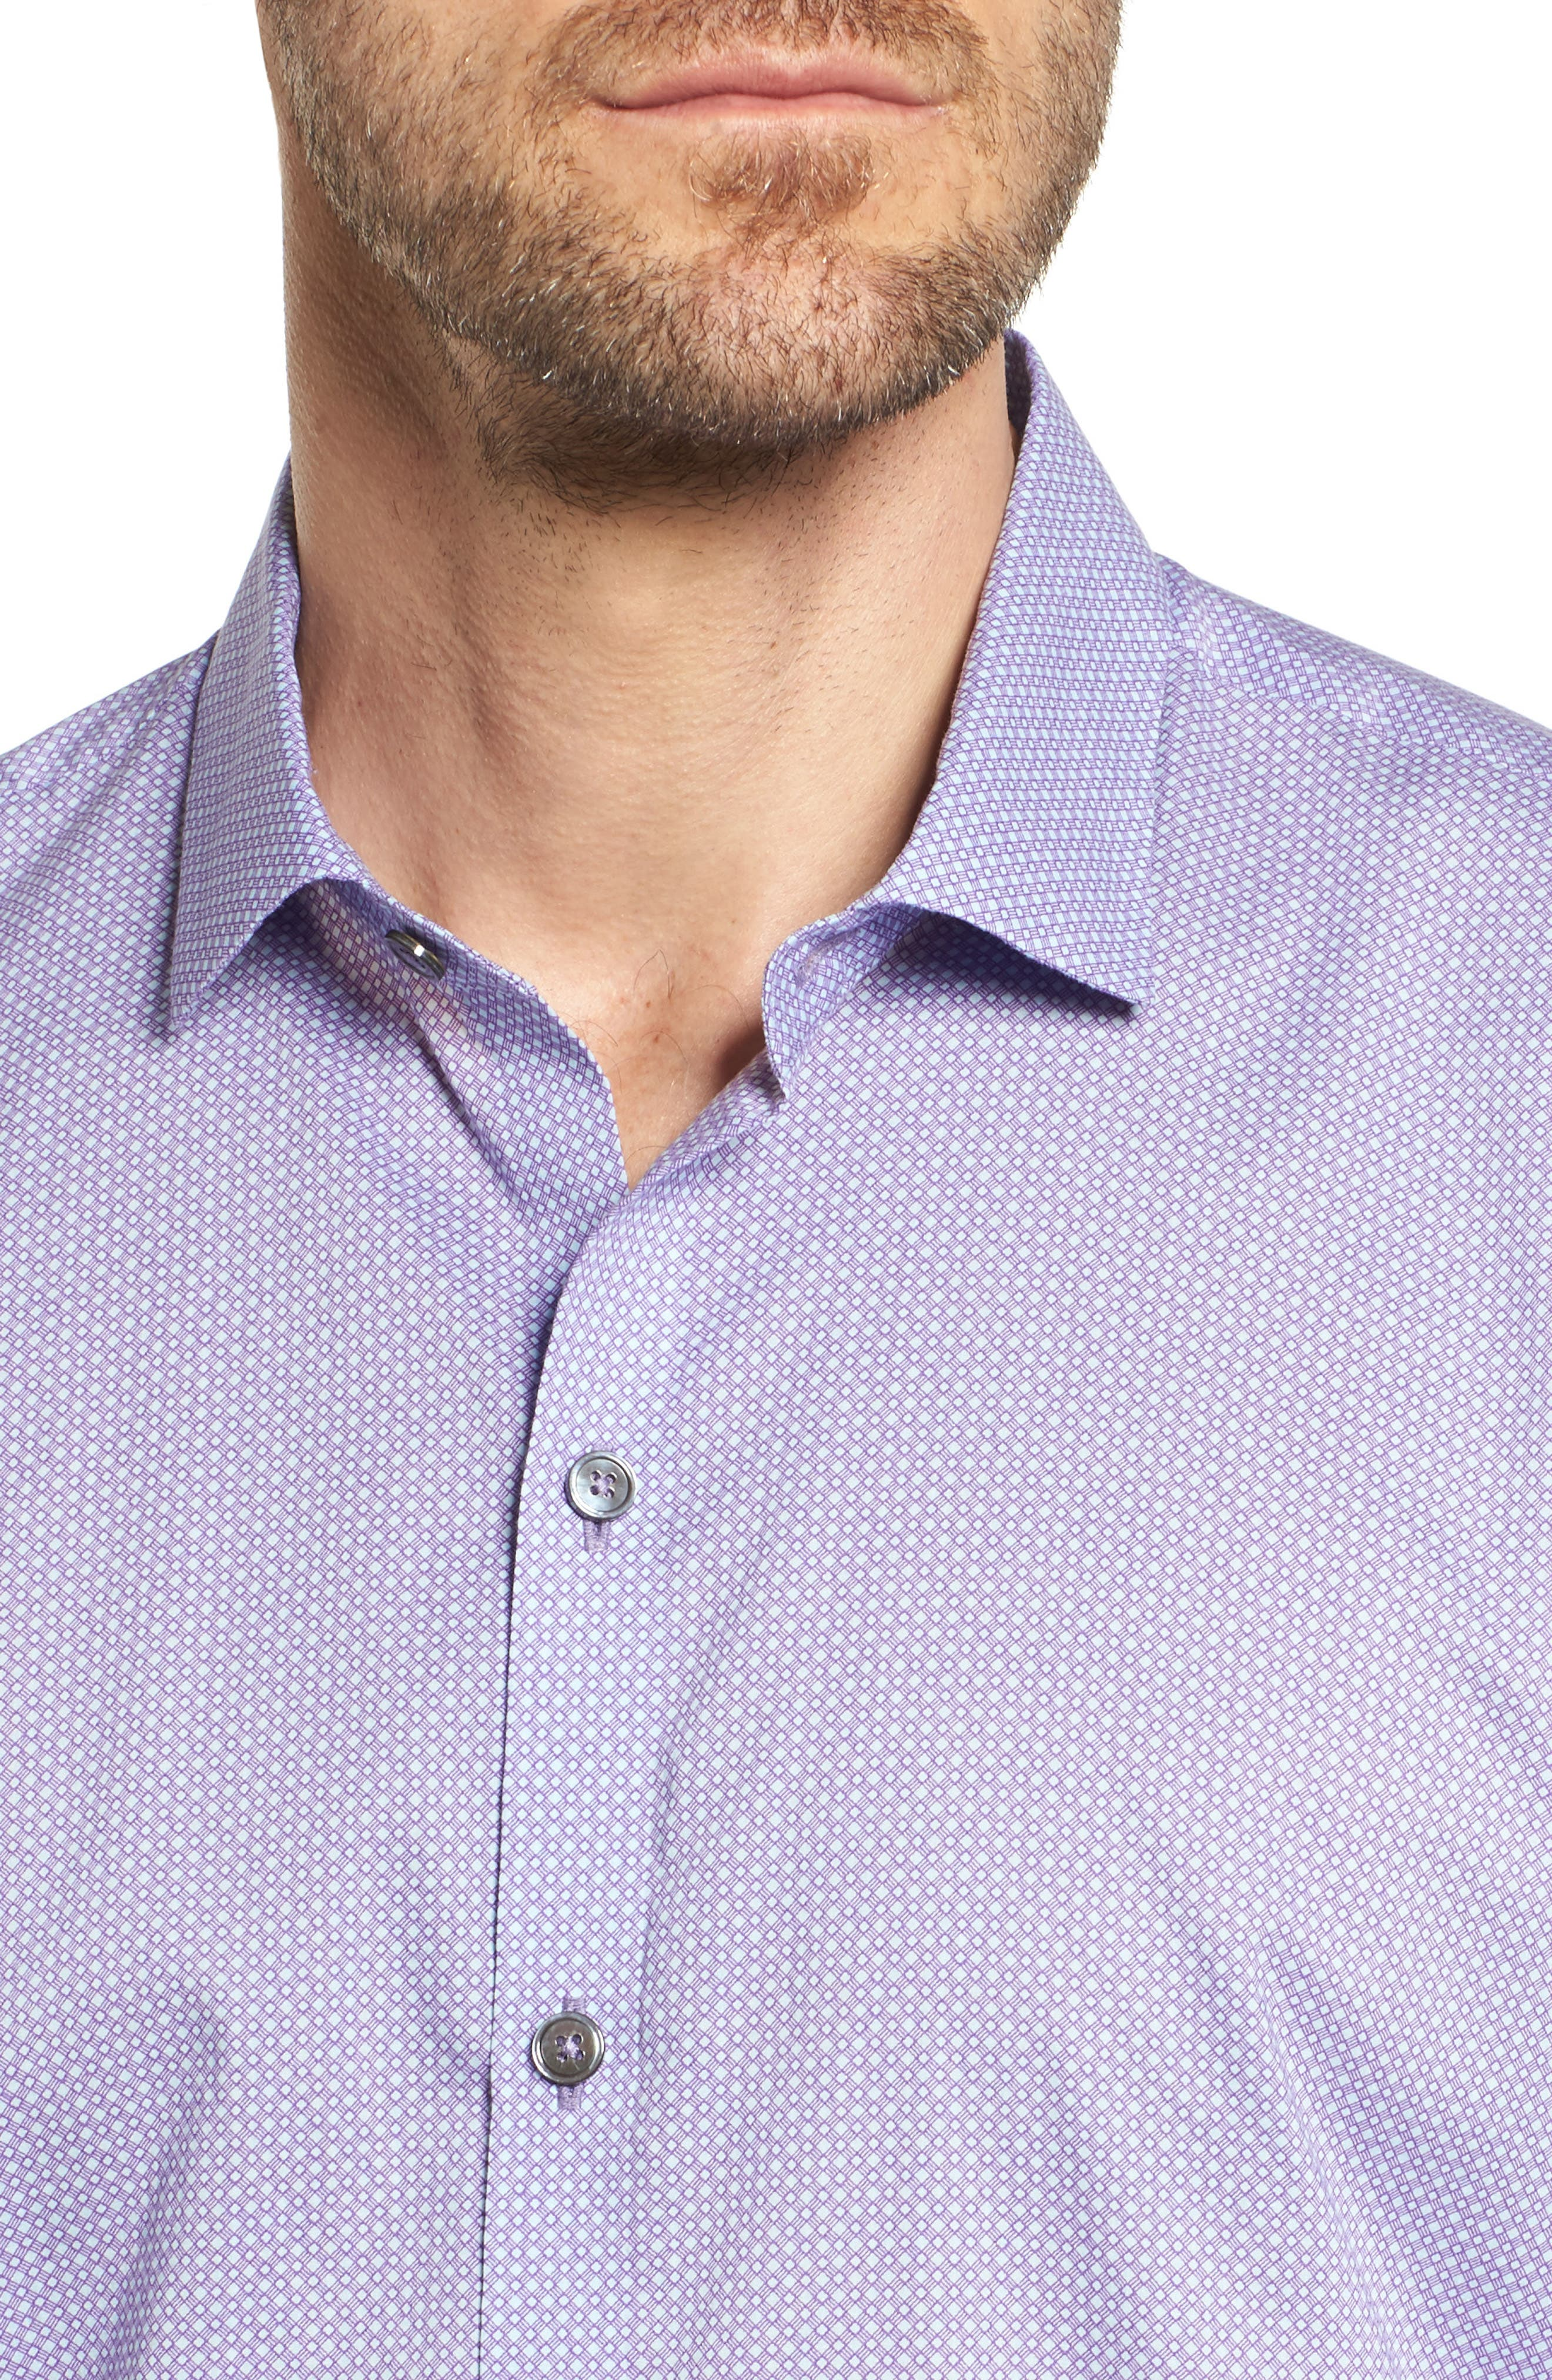 O'Malley Circle Print Sport Shirt,                             Alternate thumbnail 4, color,                             Purple